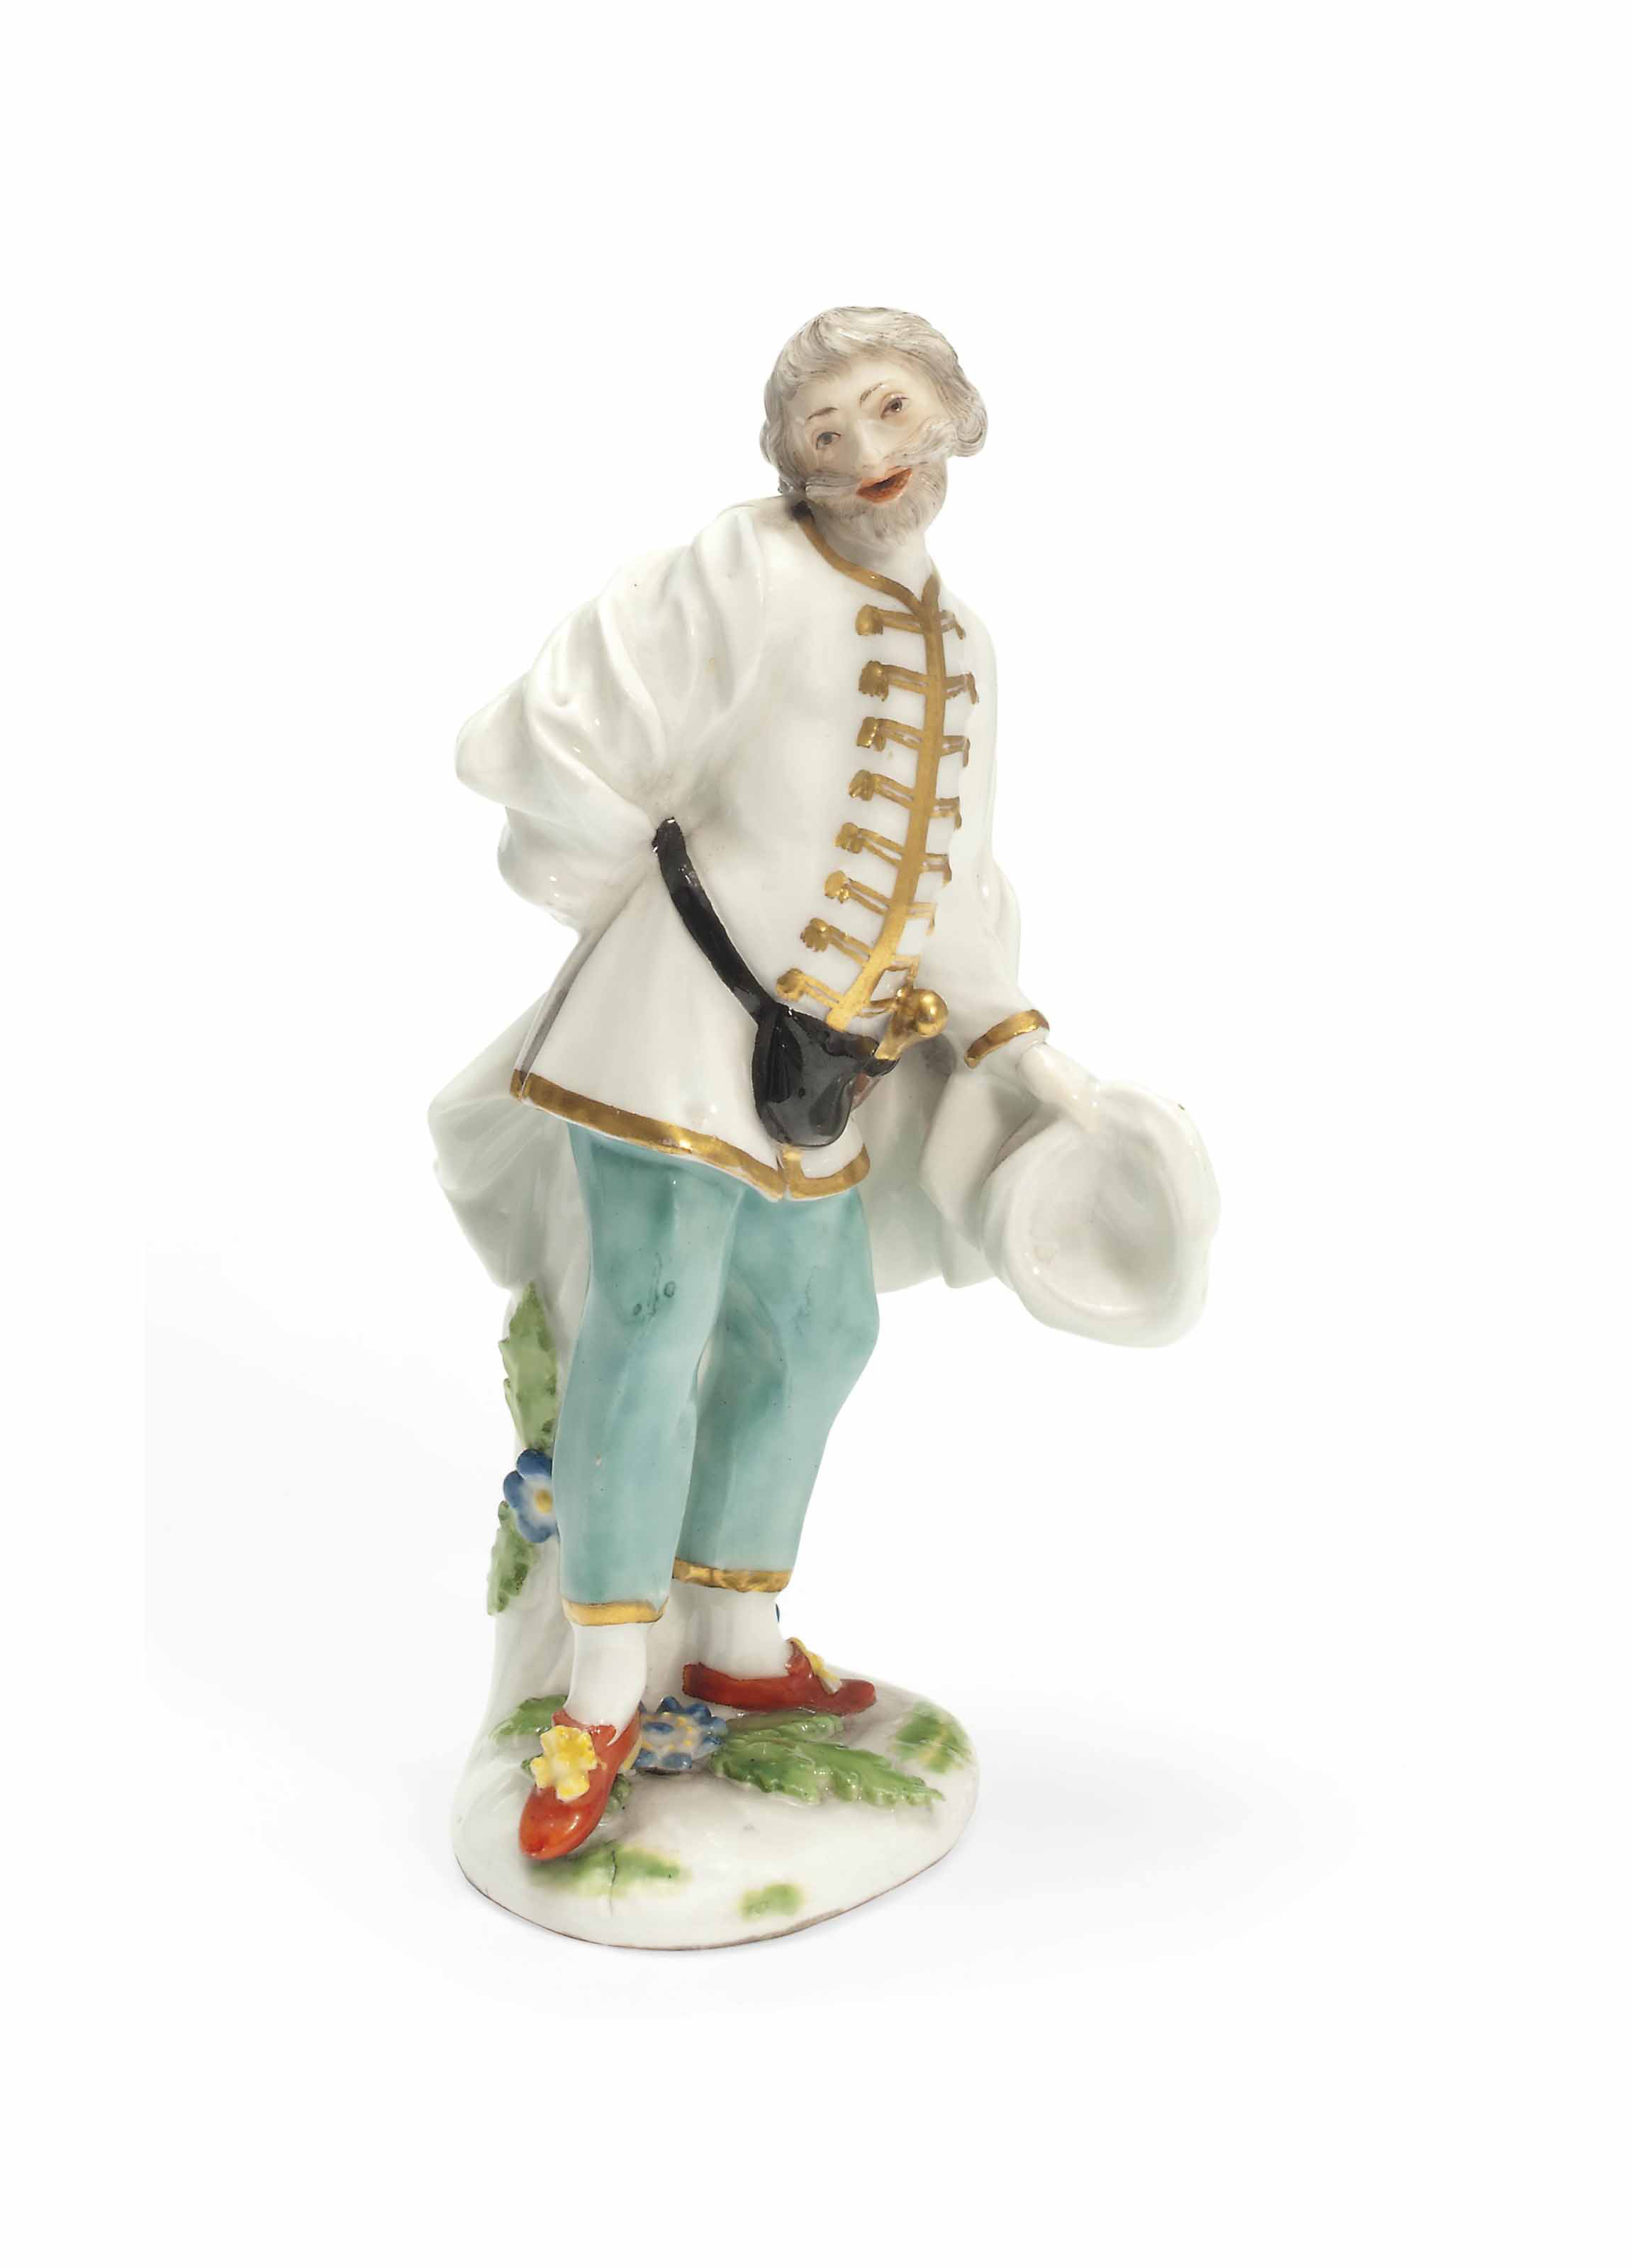 A MEISSEN MODEL OF SCAPIN FROM